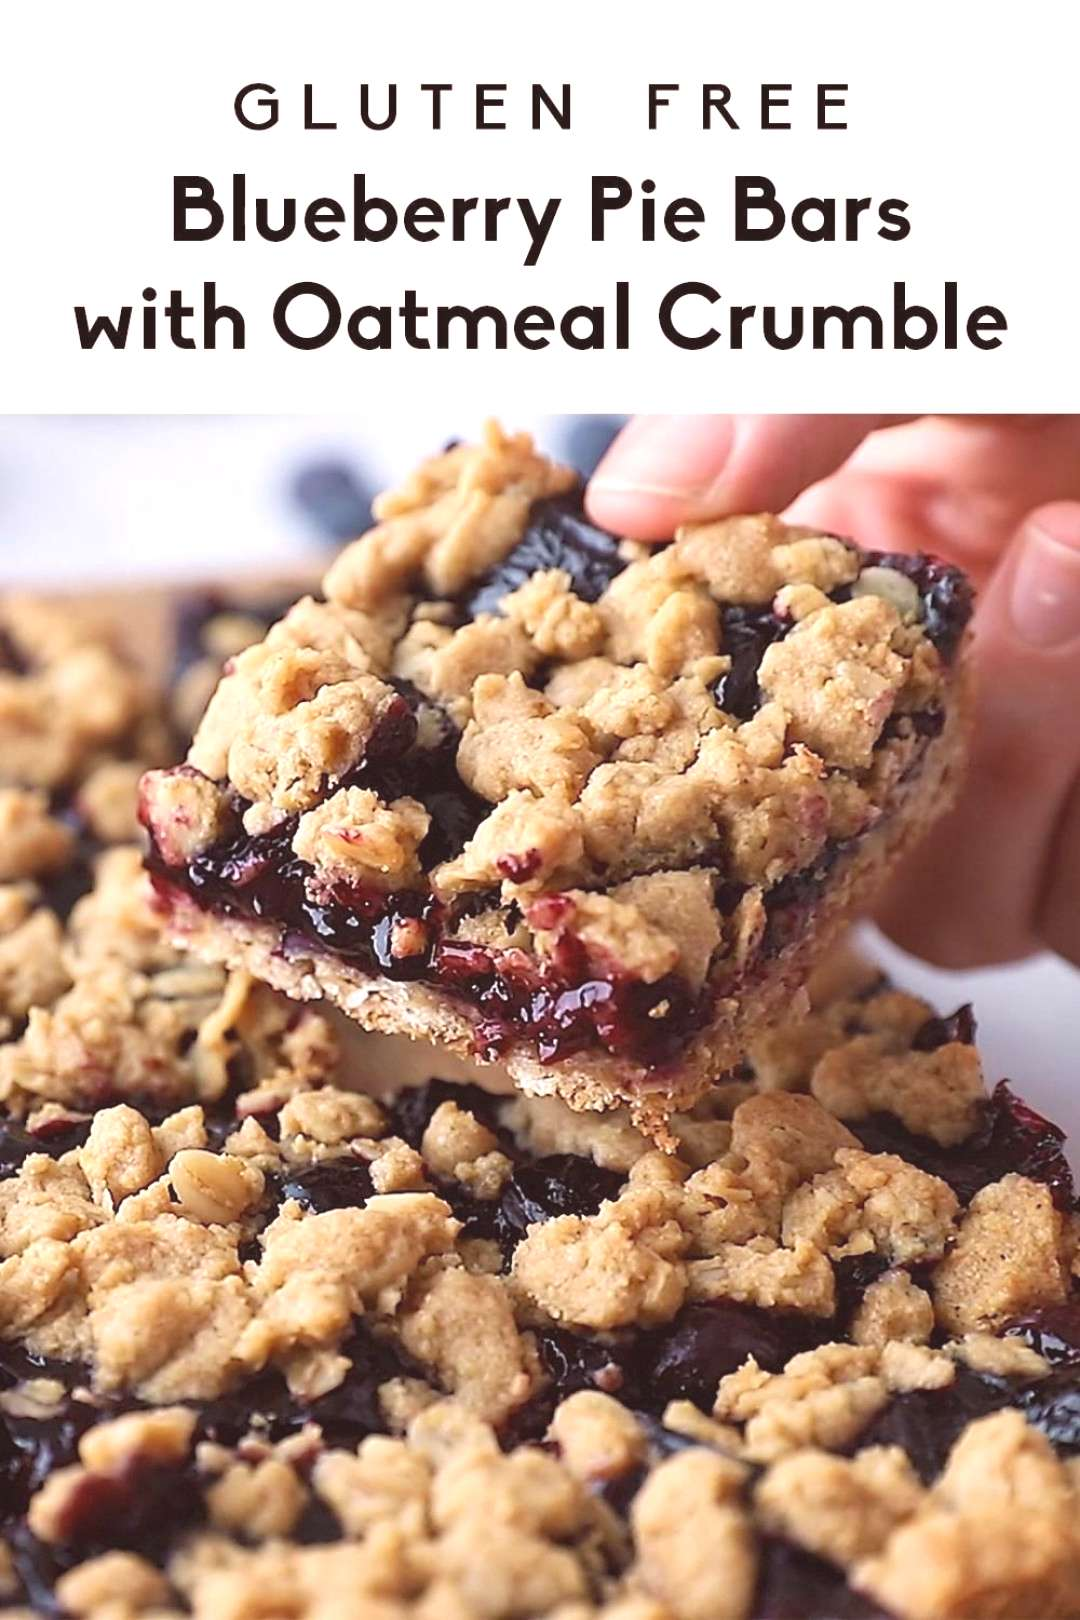 Incredible Gluten Free Blueberry Pie Bars with Oatmeal Crumble -   -